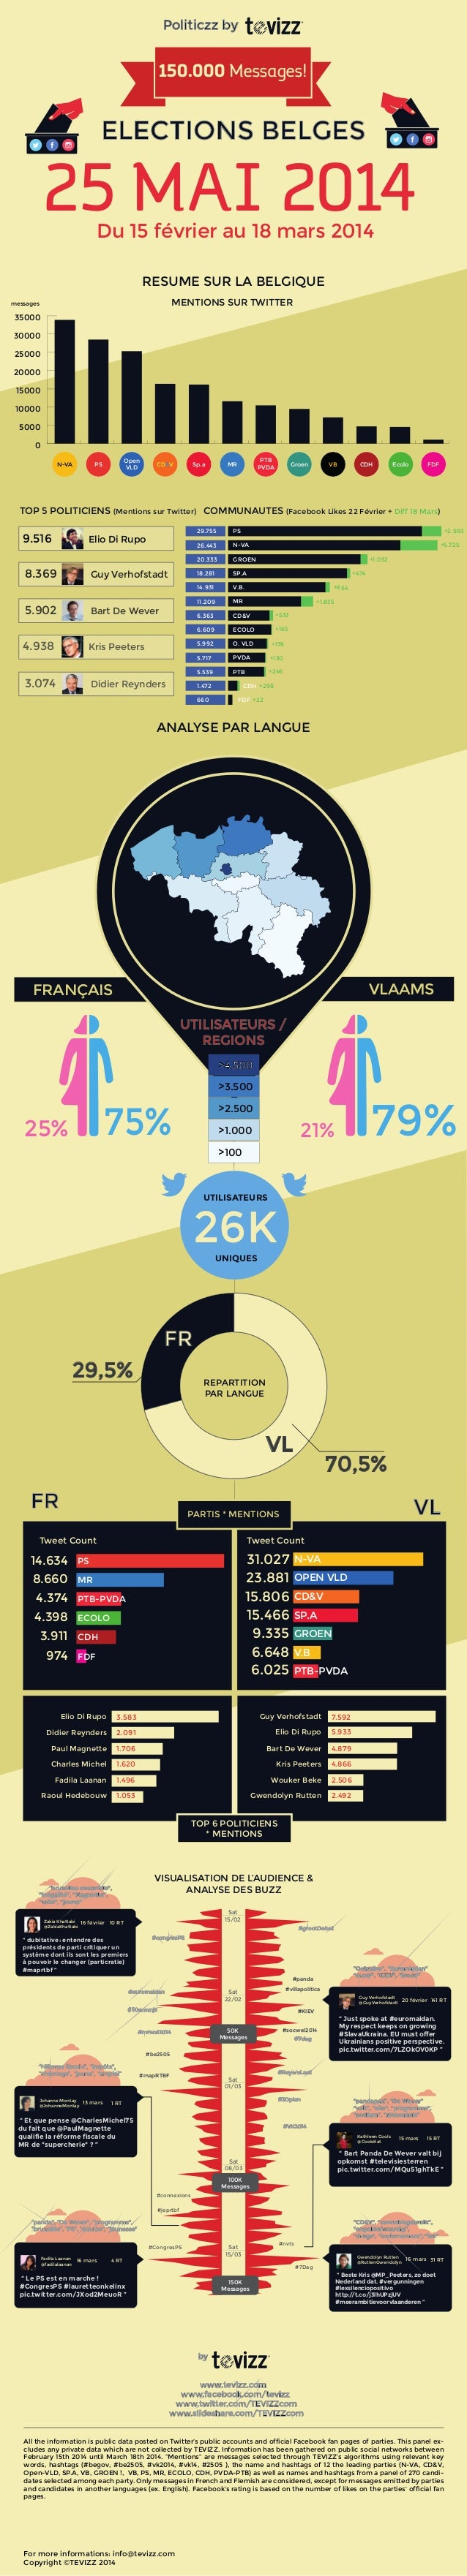 TEVIZZ Infographics About #Politiczz Study on Social Networks